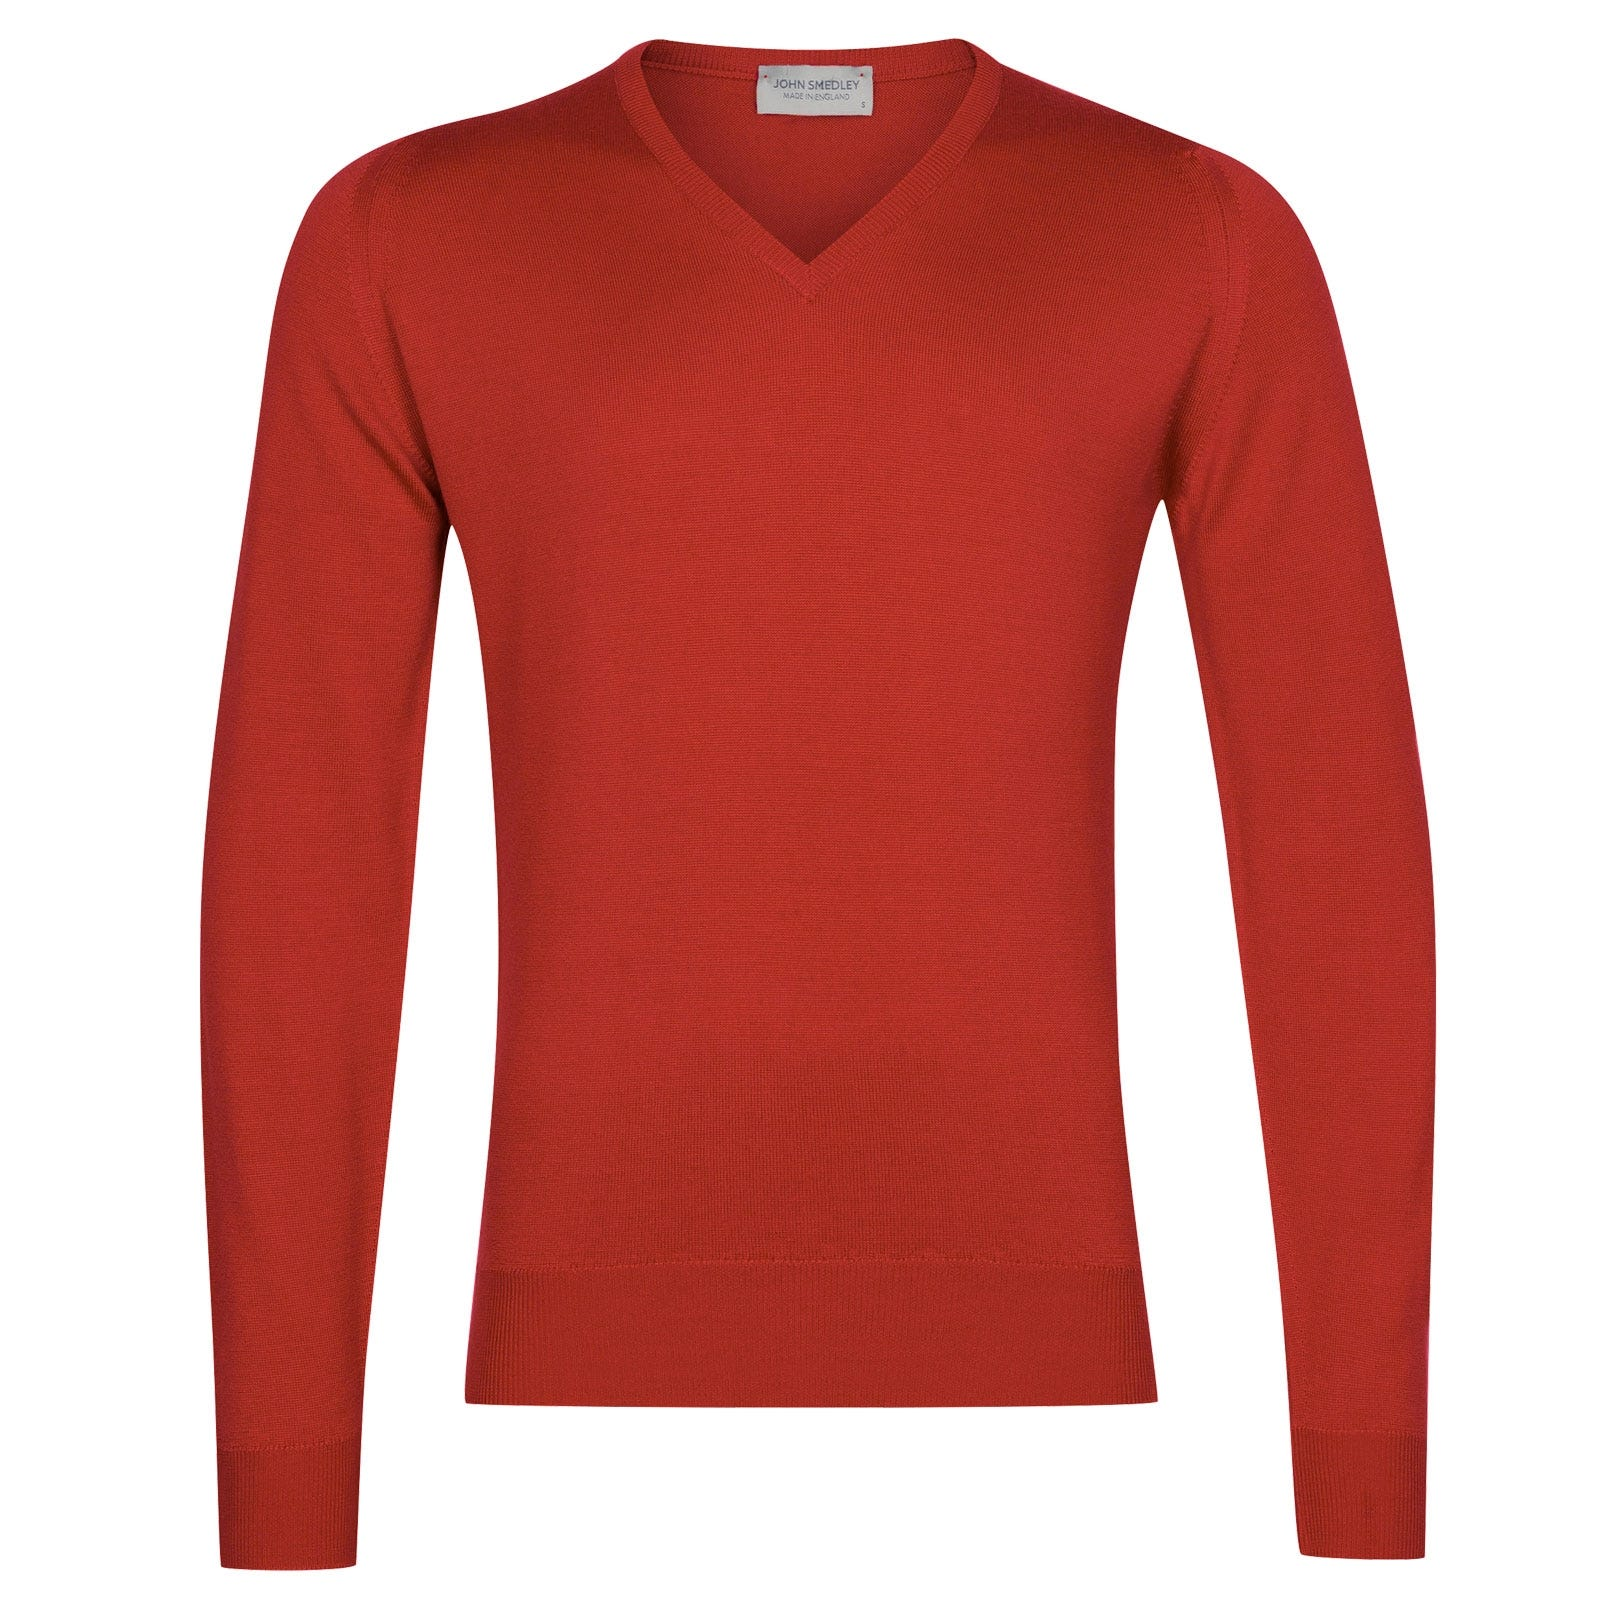 John Smedley Blenheim in Red Admiral Pullover-SML